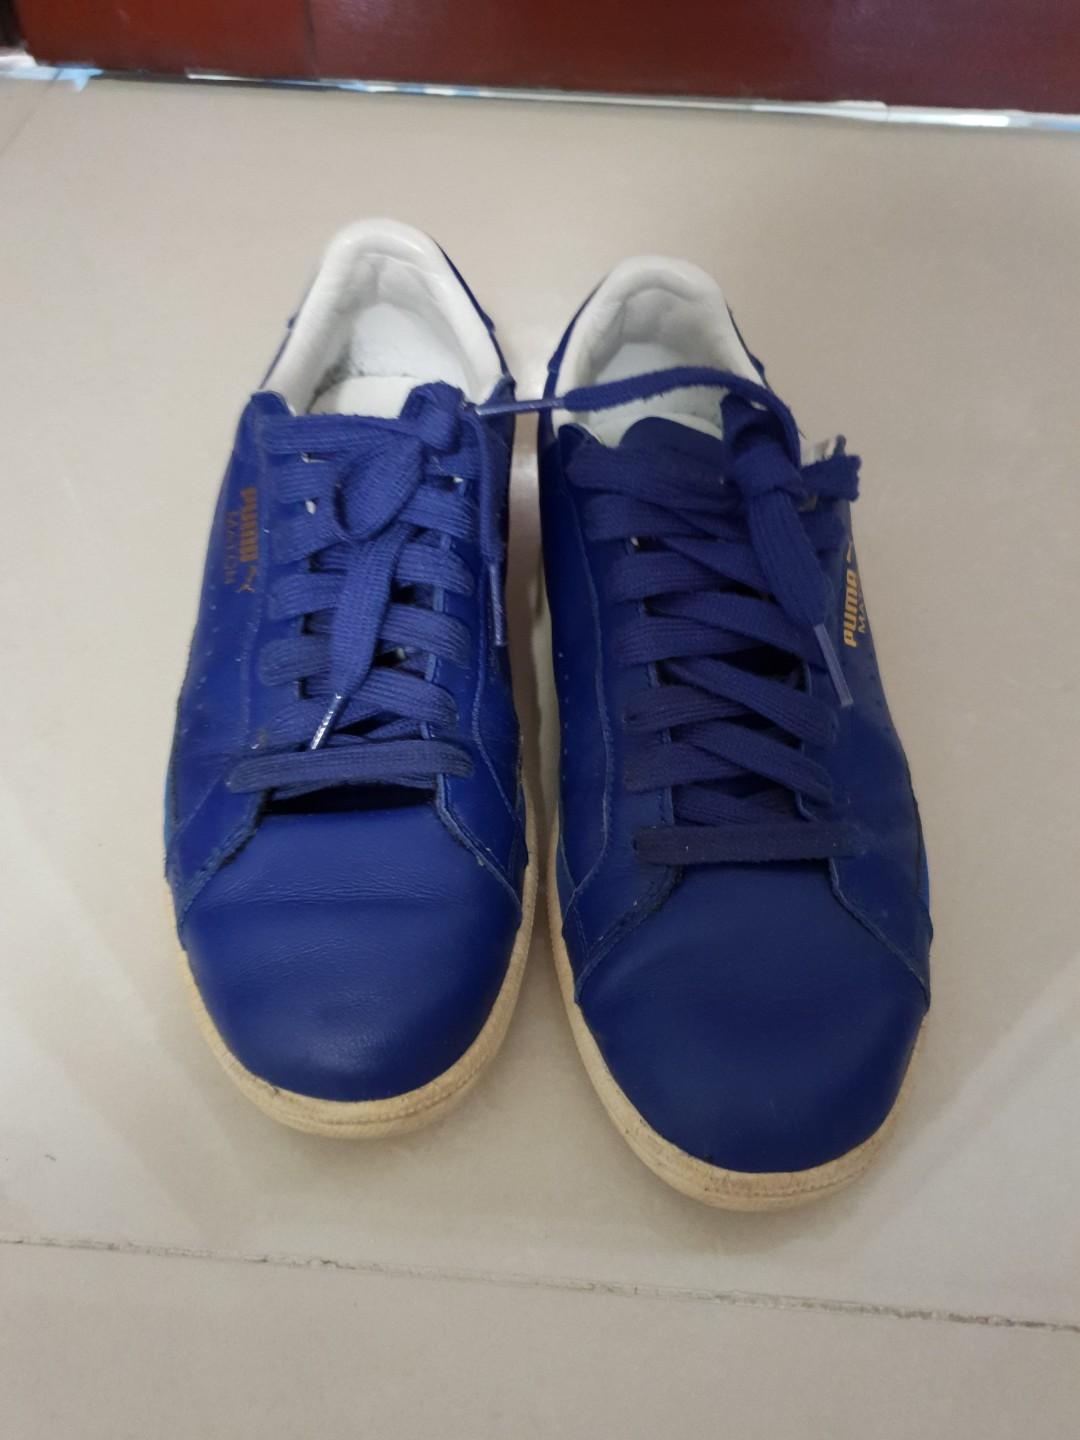 Puma blue leather sneakers